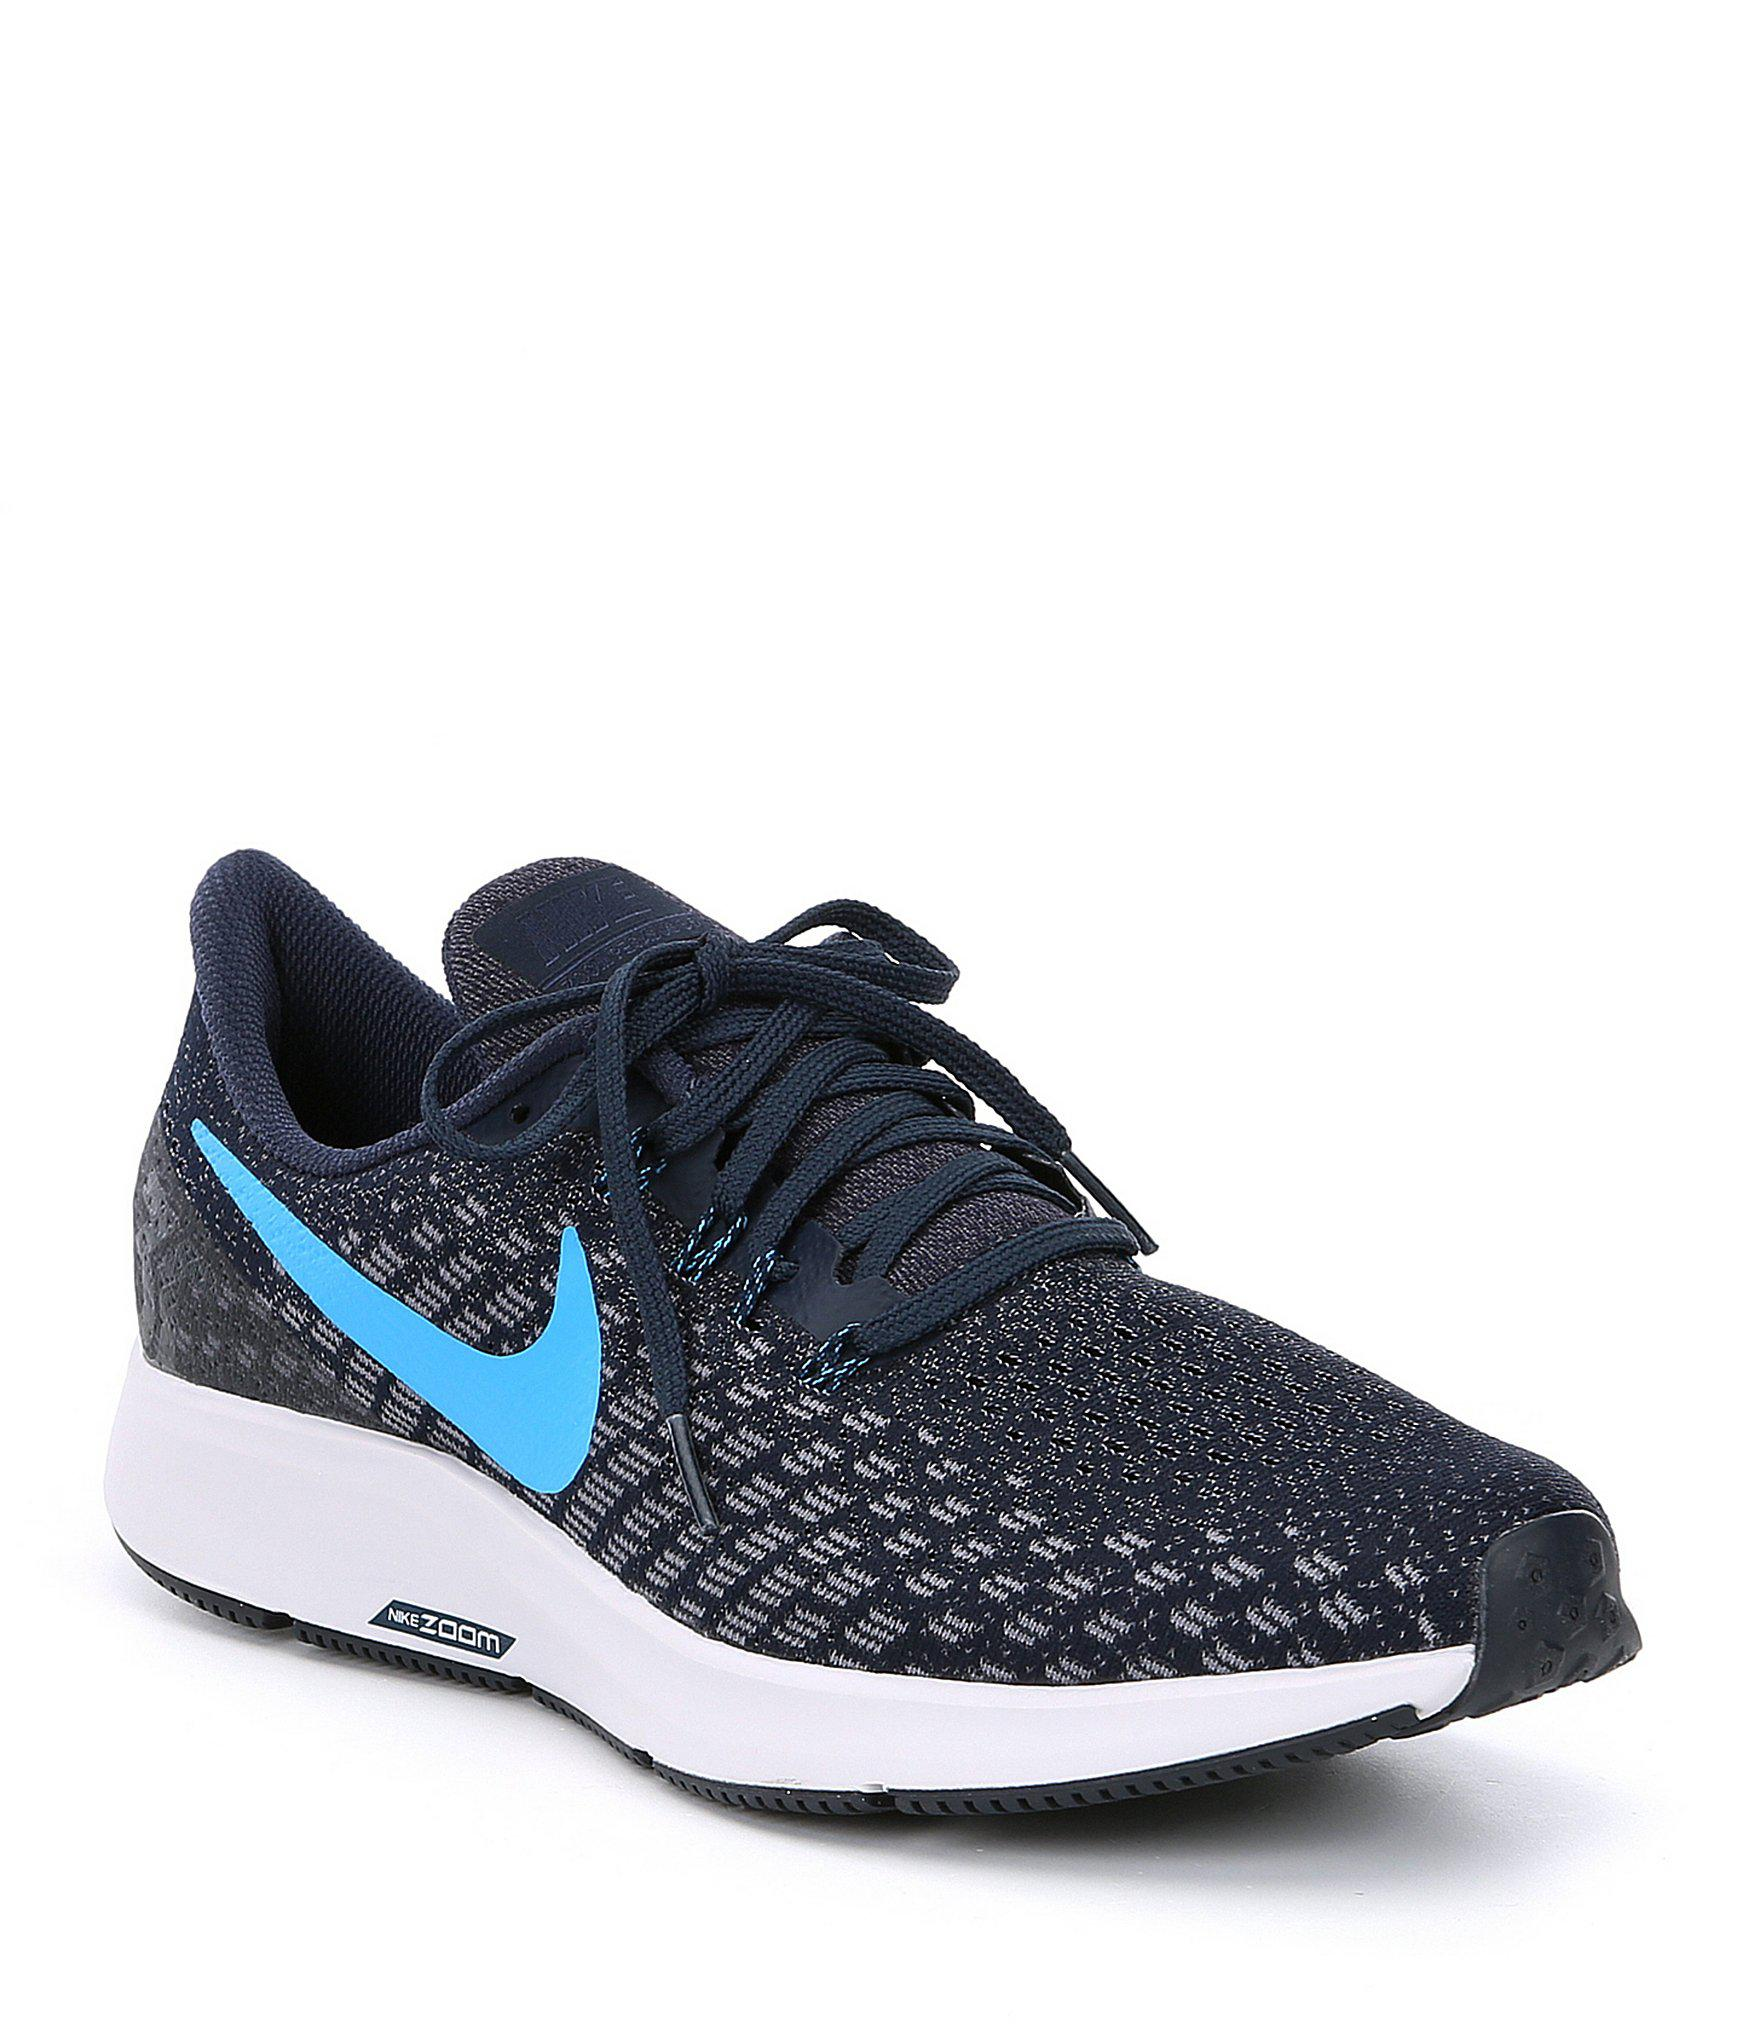 9e6e9f31dd3f4a ... Lyst - Nike Men s Air Zoom Pegasus 35 Running Shoes in Blue for Men  reputable ...